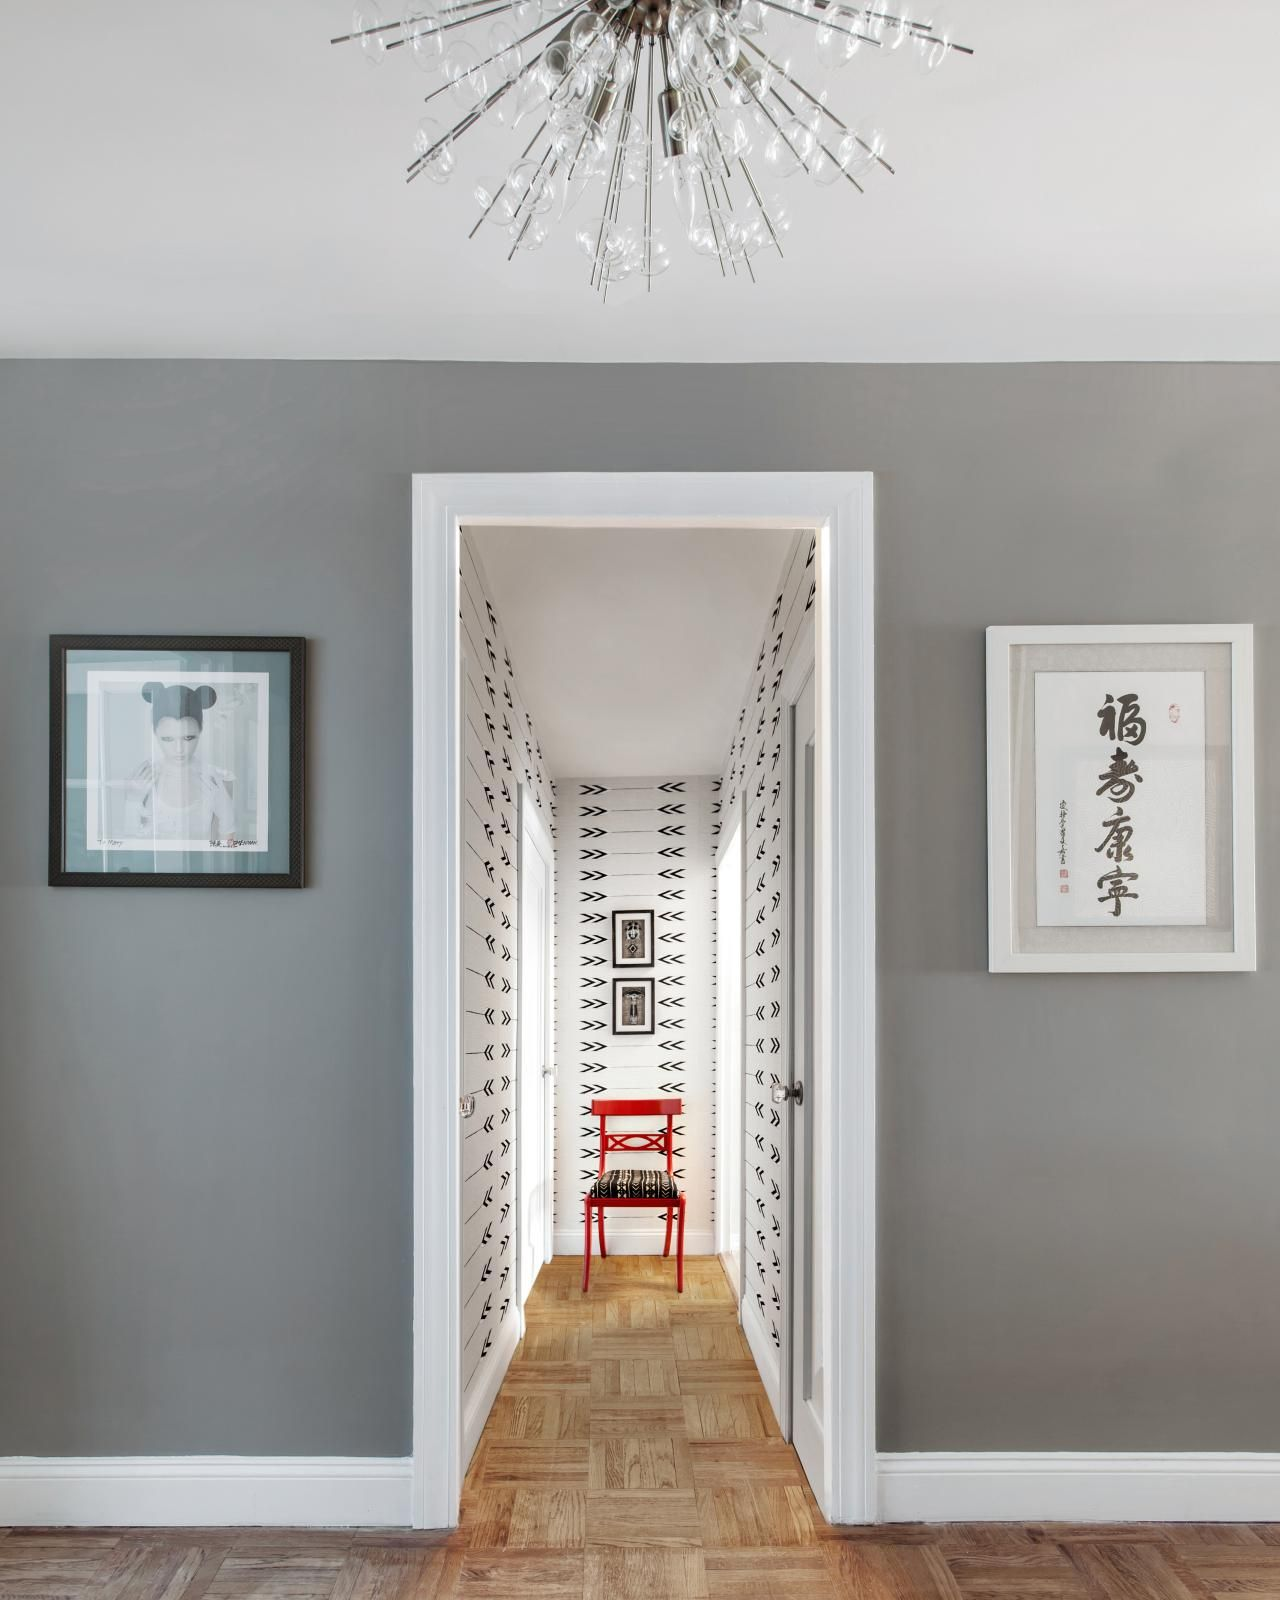 Interior Design White Walls: Gray Walls With Cool White Trim Give Way To A Wallpapered